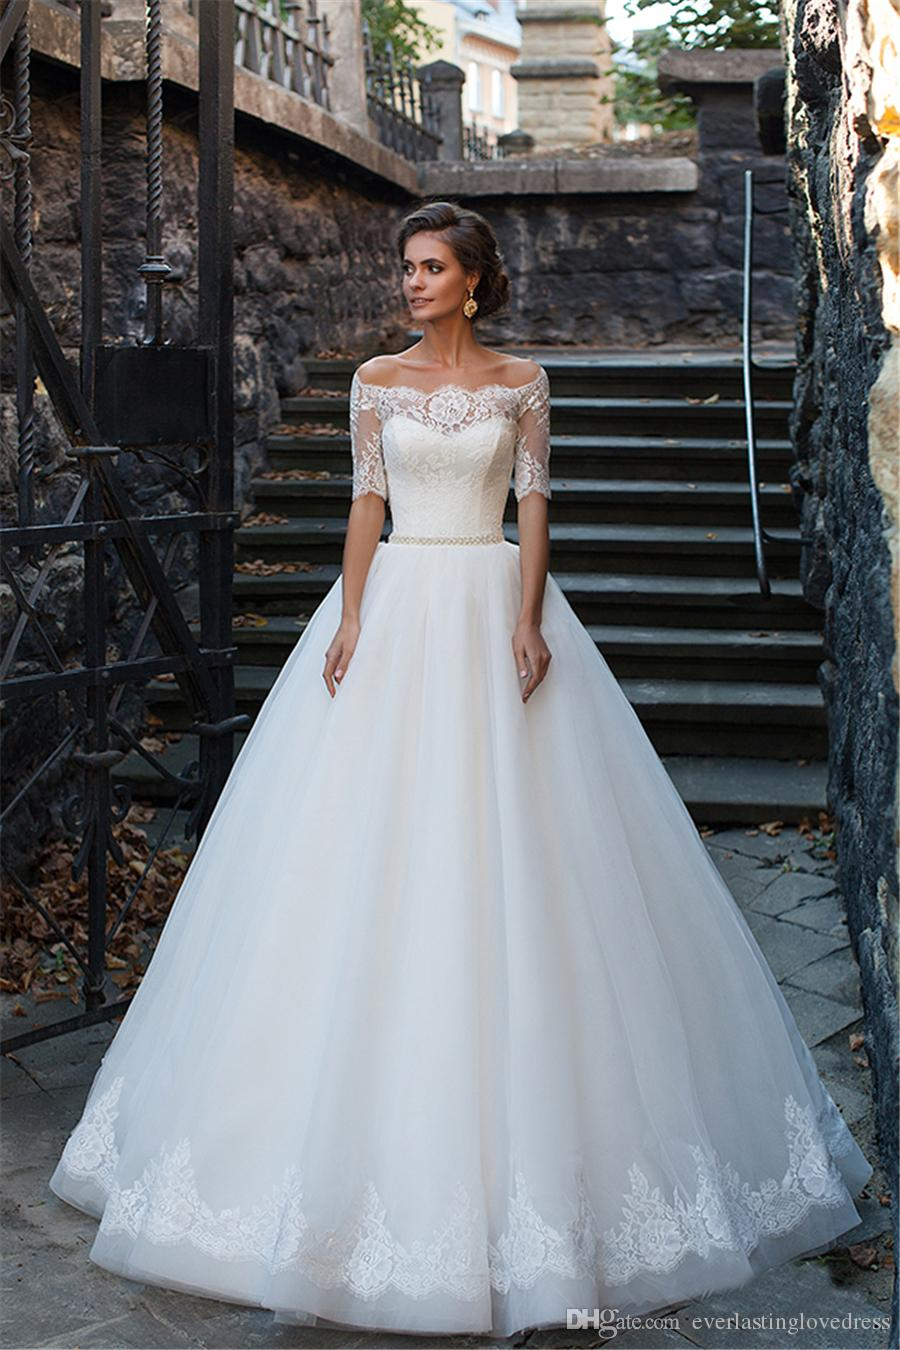 Off The Shoulder Lace and Tulle Ball Gown Beading Sash Wedding Gown Hand Tie Back Button Bridal Gowns Sweep Train vestido